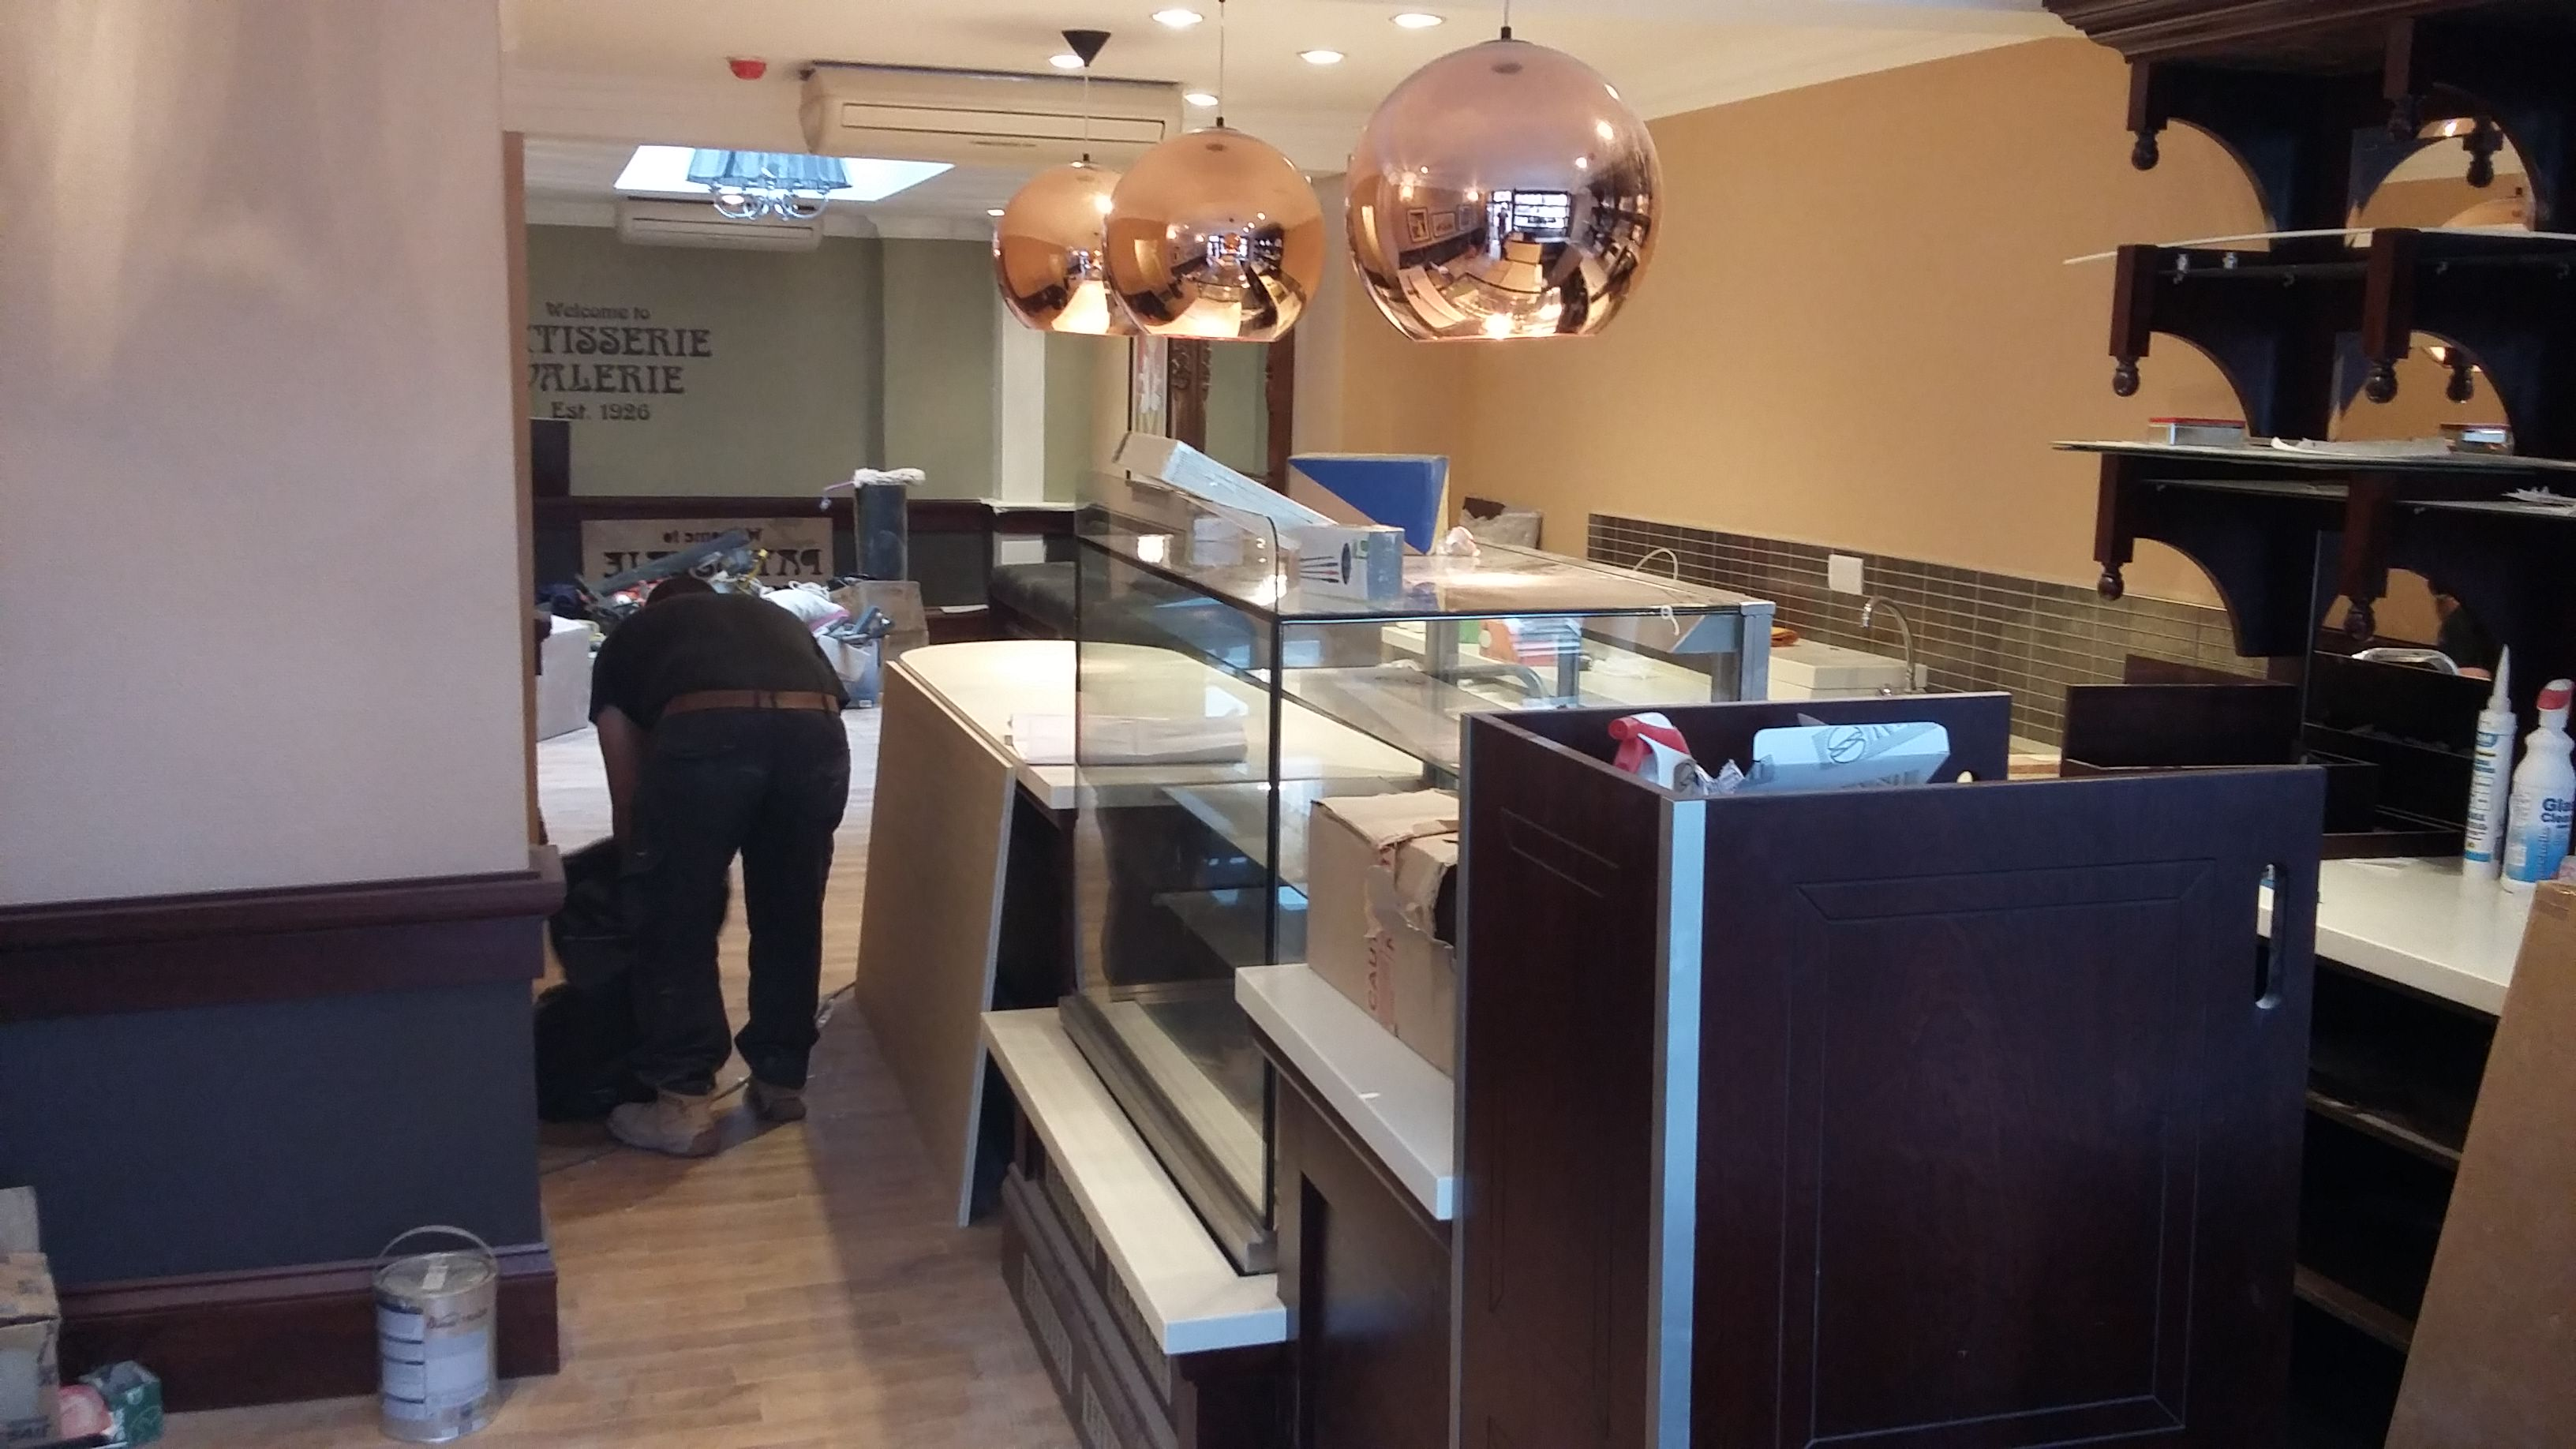 Shop Fitter Patisserie Valerie59